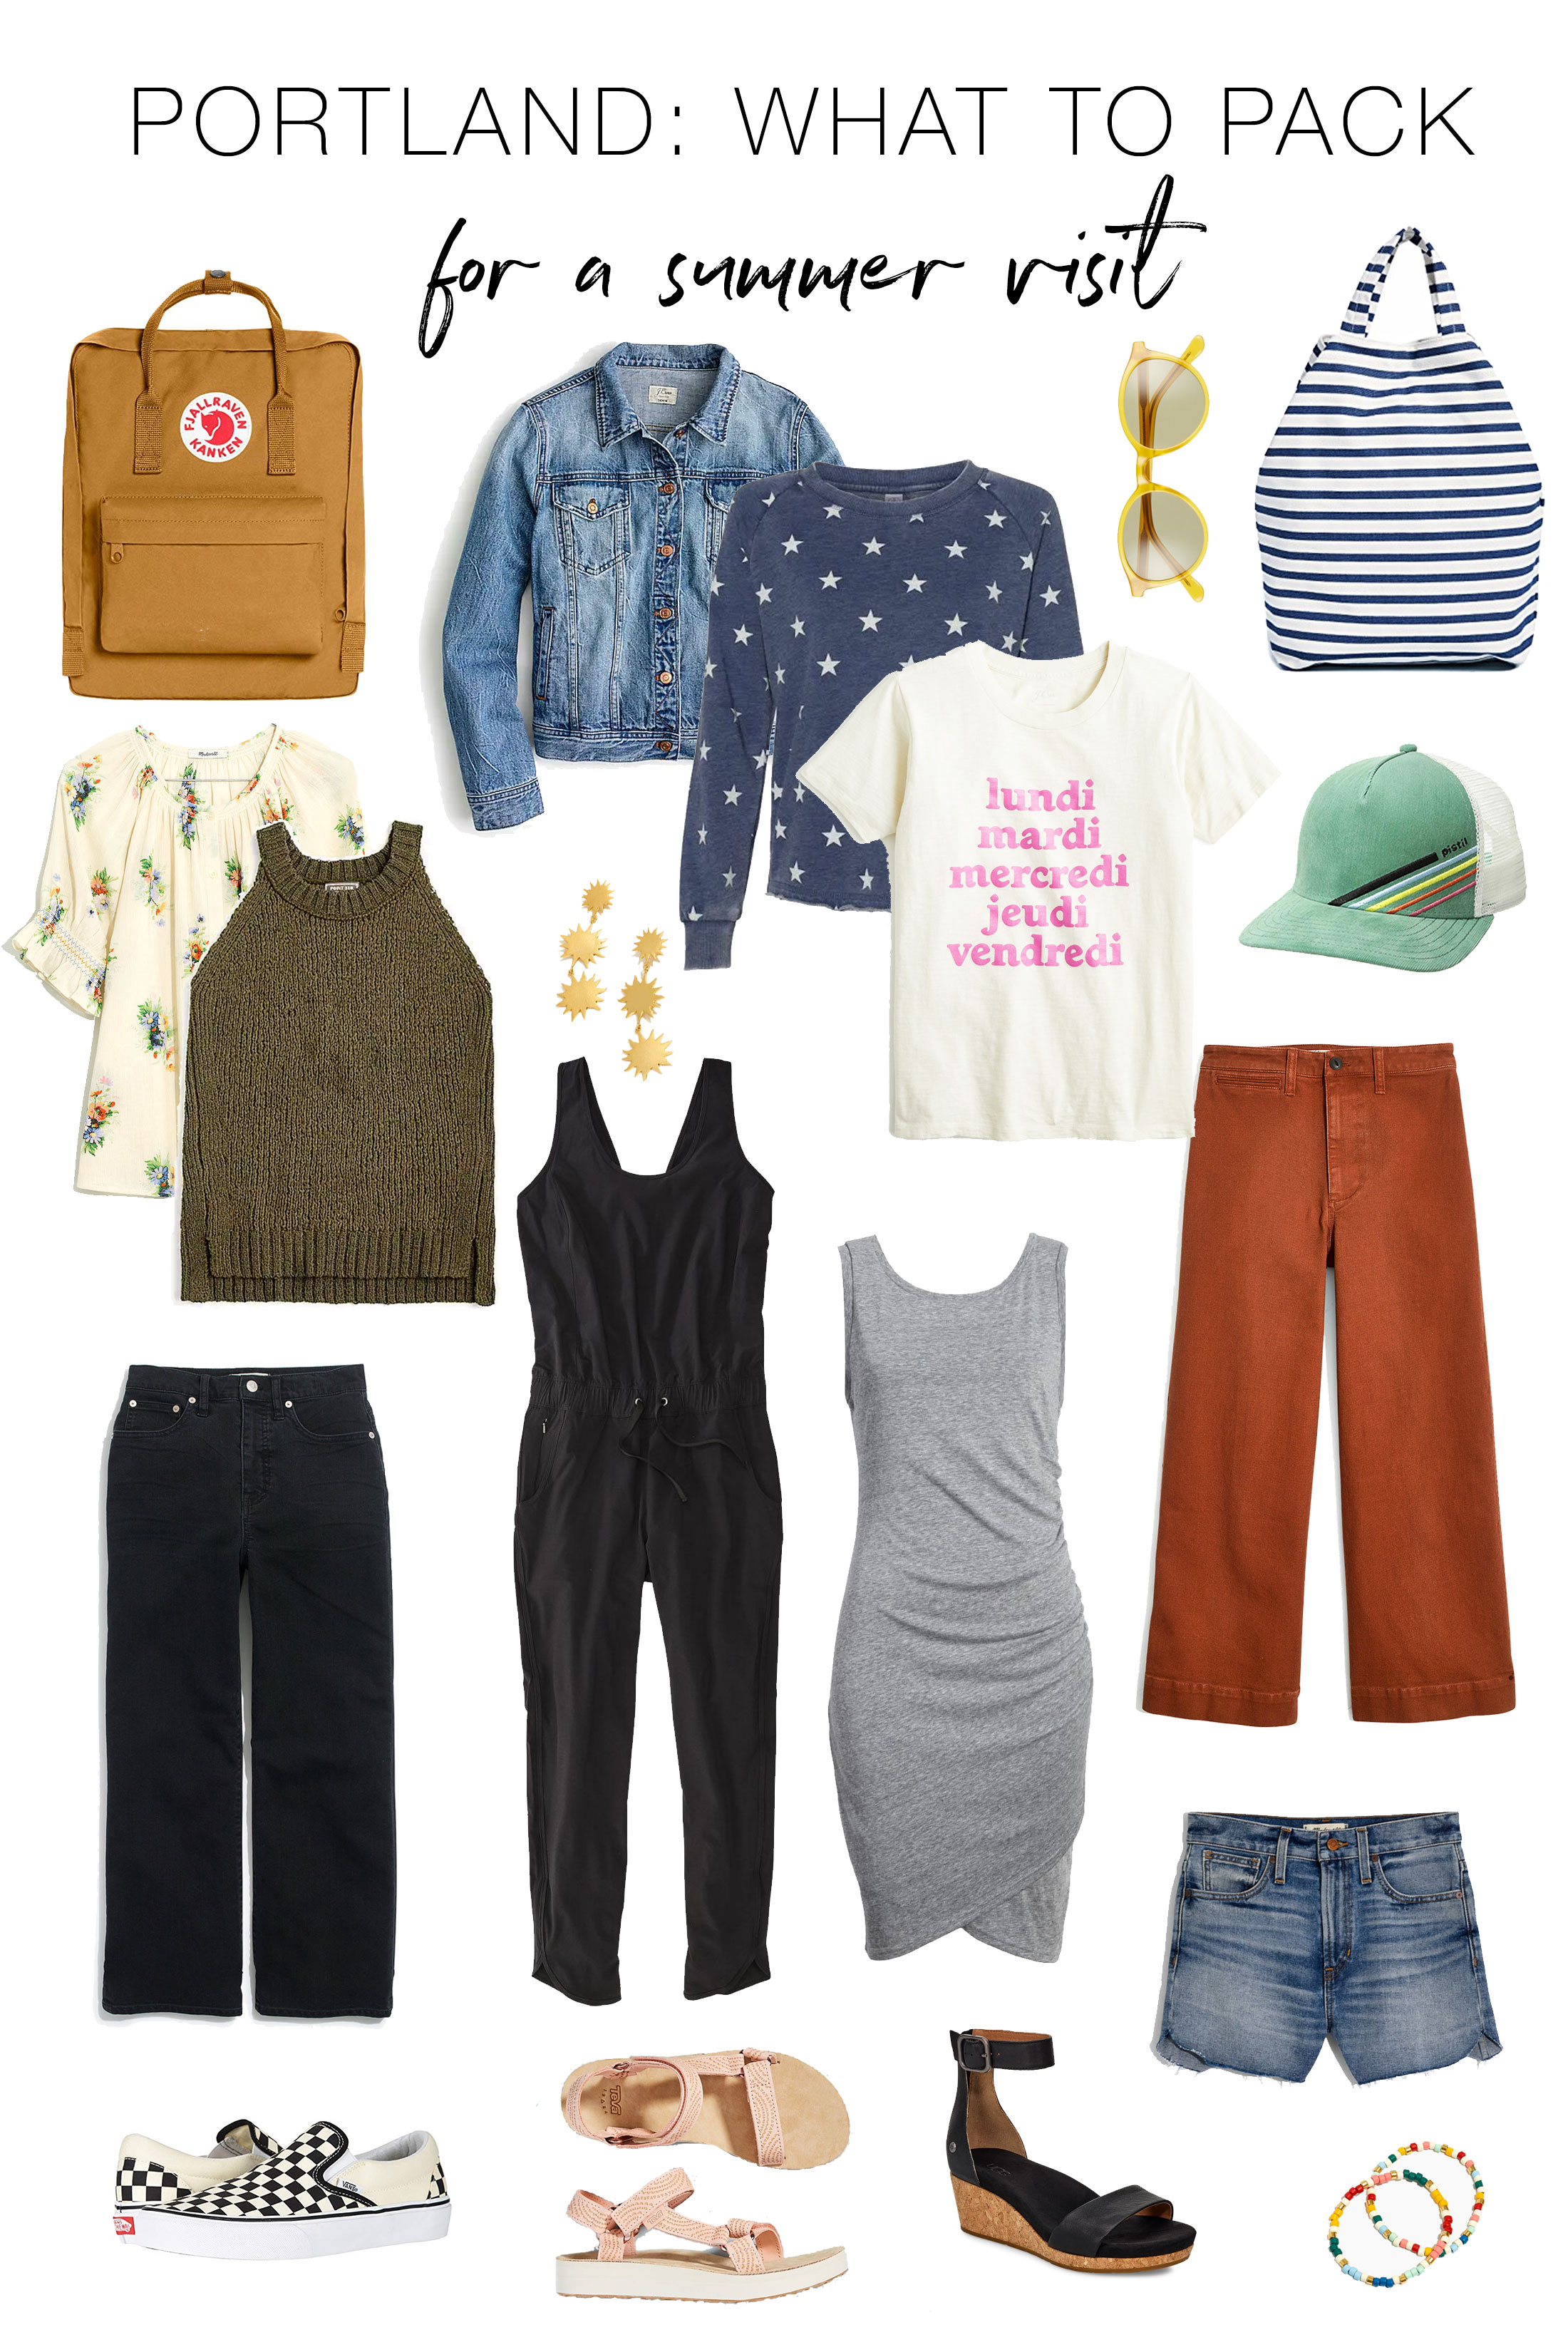 Ah, yes! Vacay in the Pacific Northwest this summer...so good! TME created this Portland packing list just for you — check out this travel capsule wardrobe.